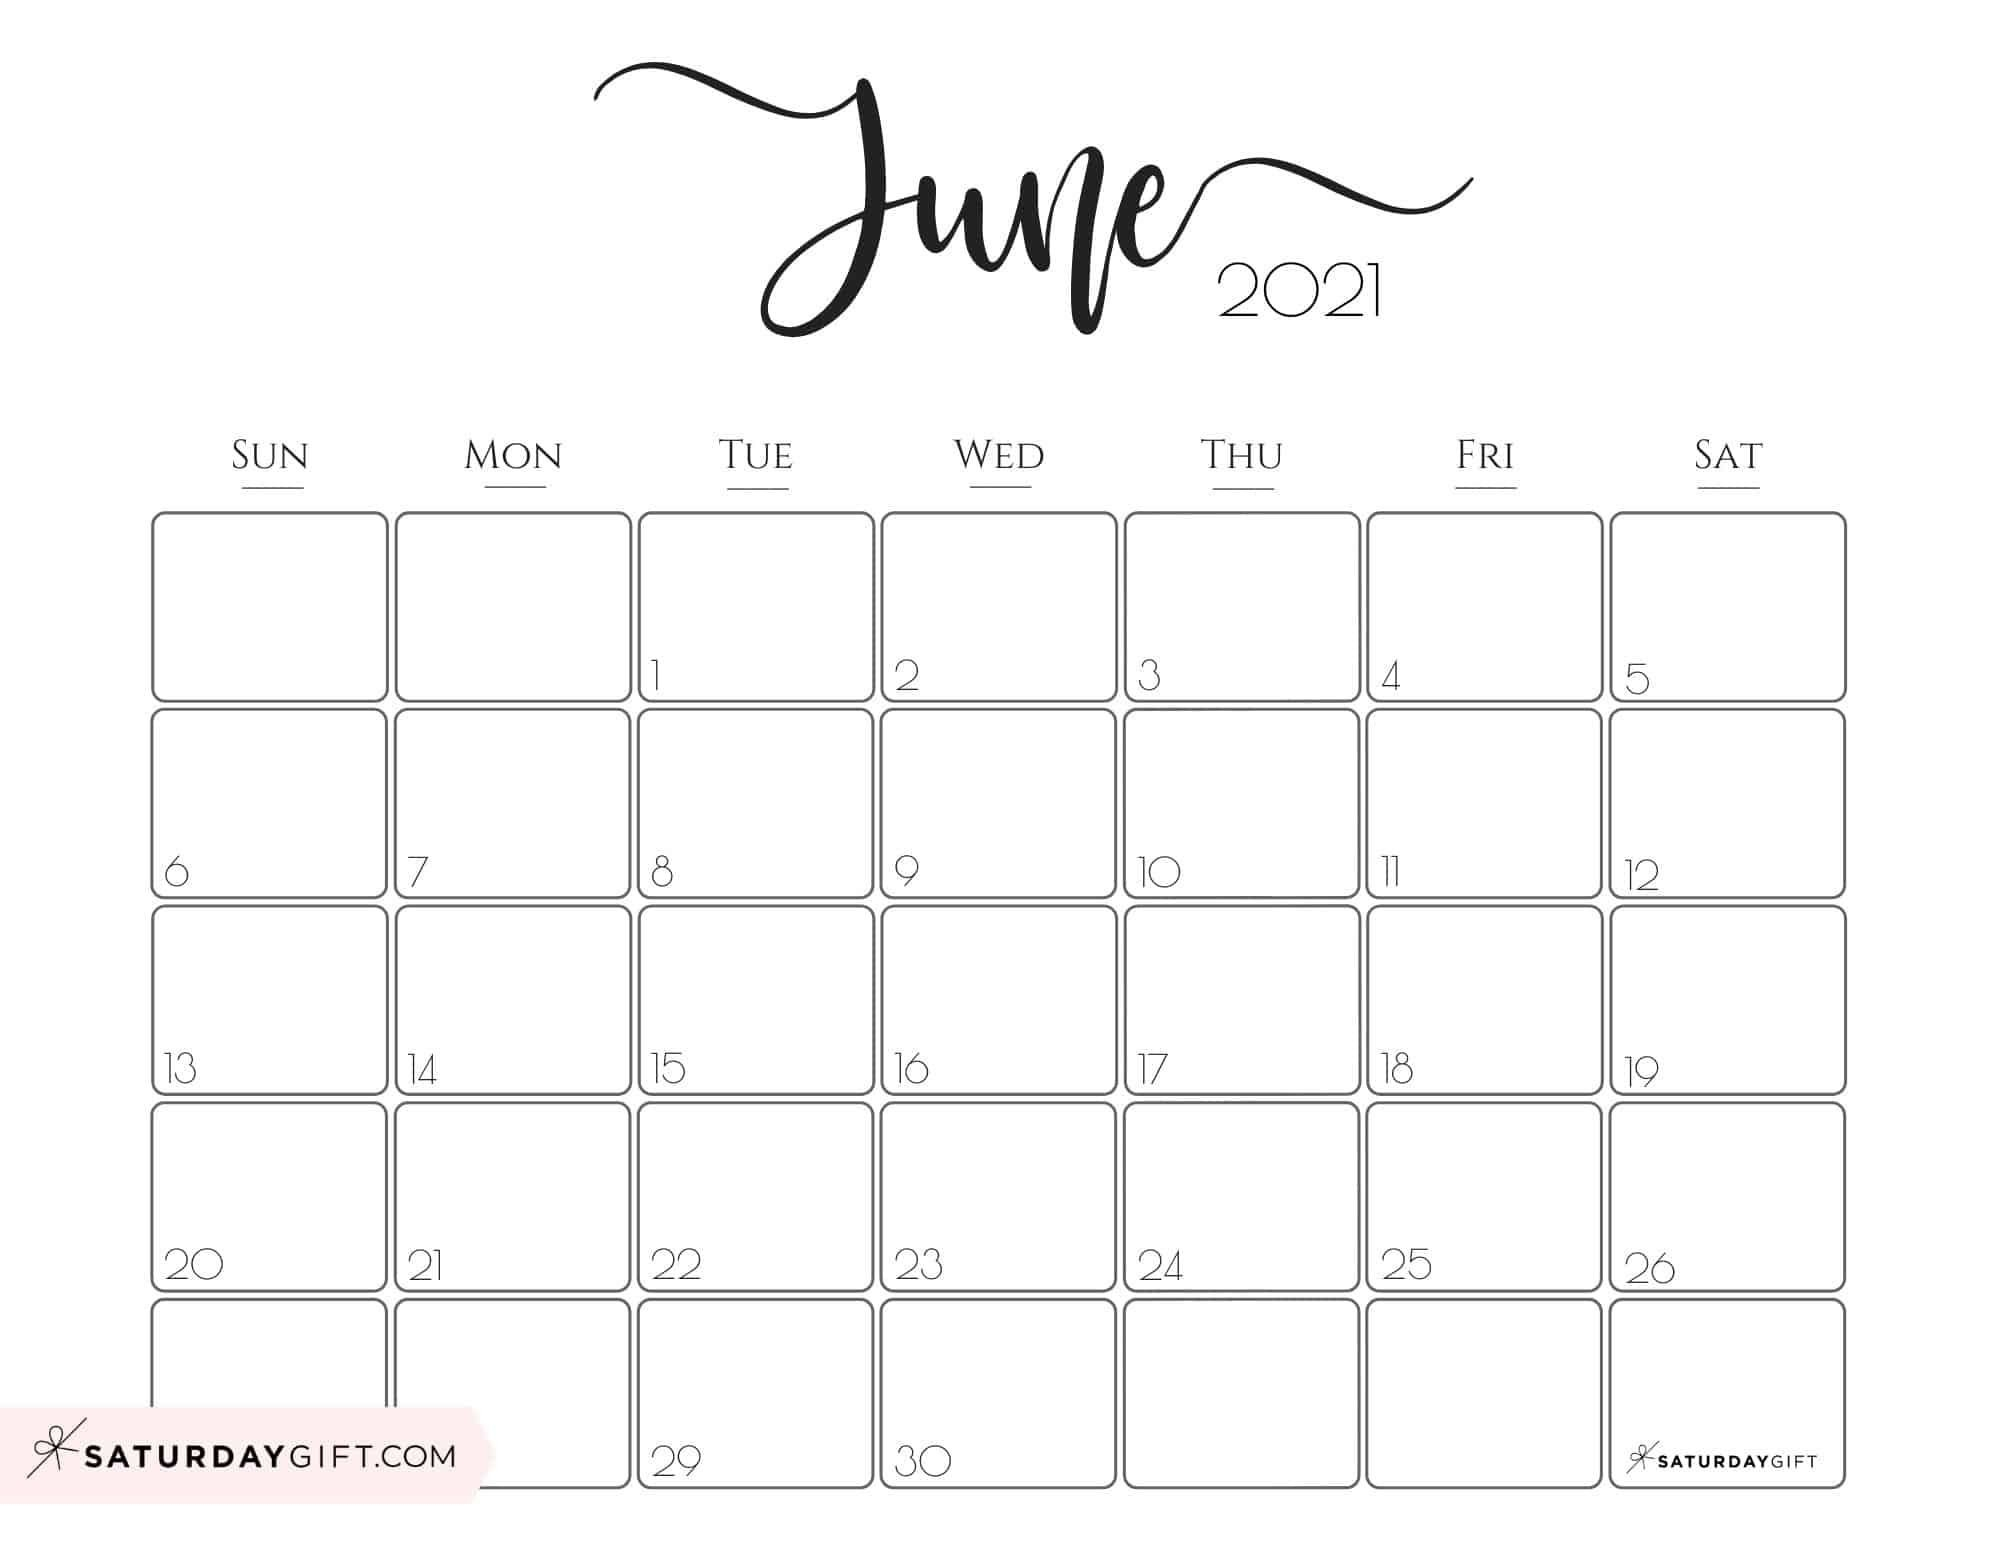 Elegant 2021 Calendarsaturdaygift - Pretty Printable  July 2021 Printable Calendar Girly